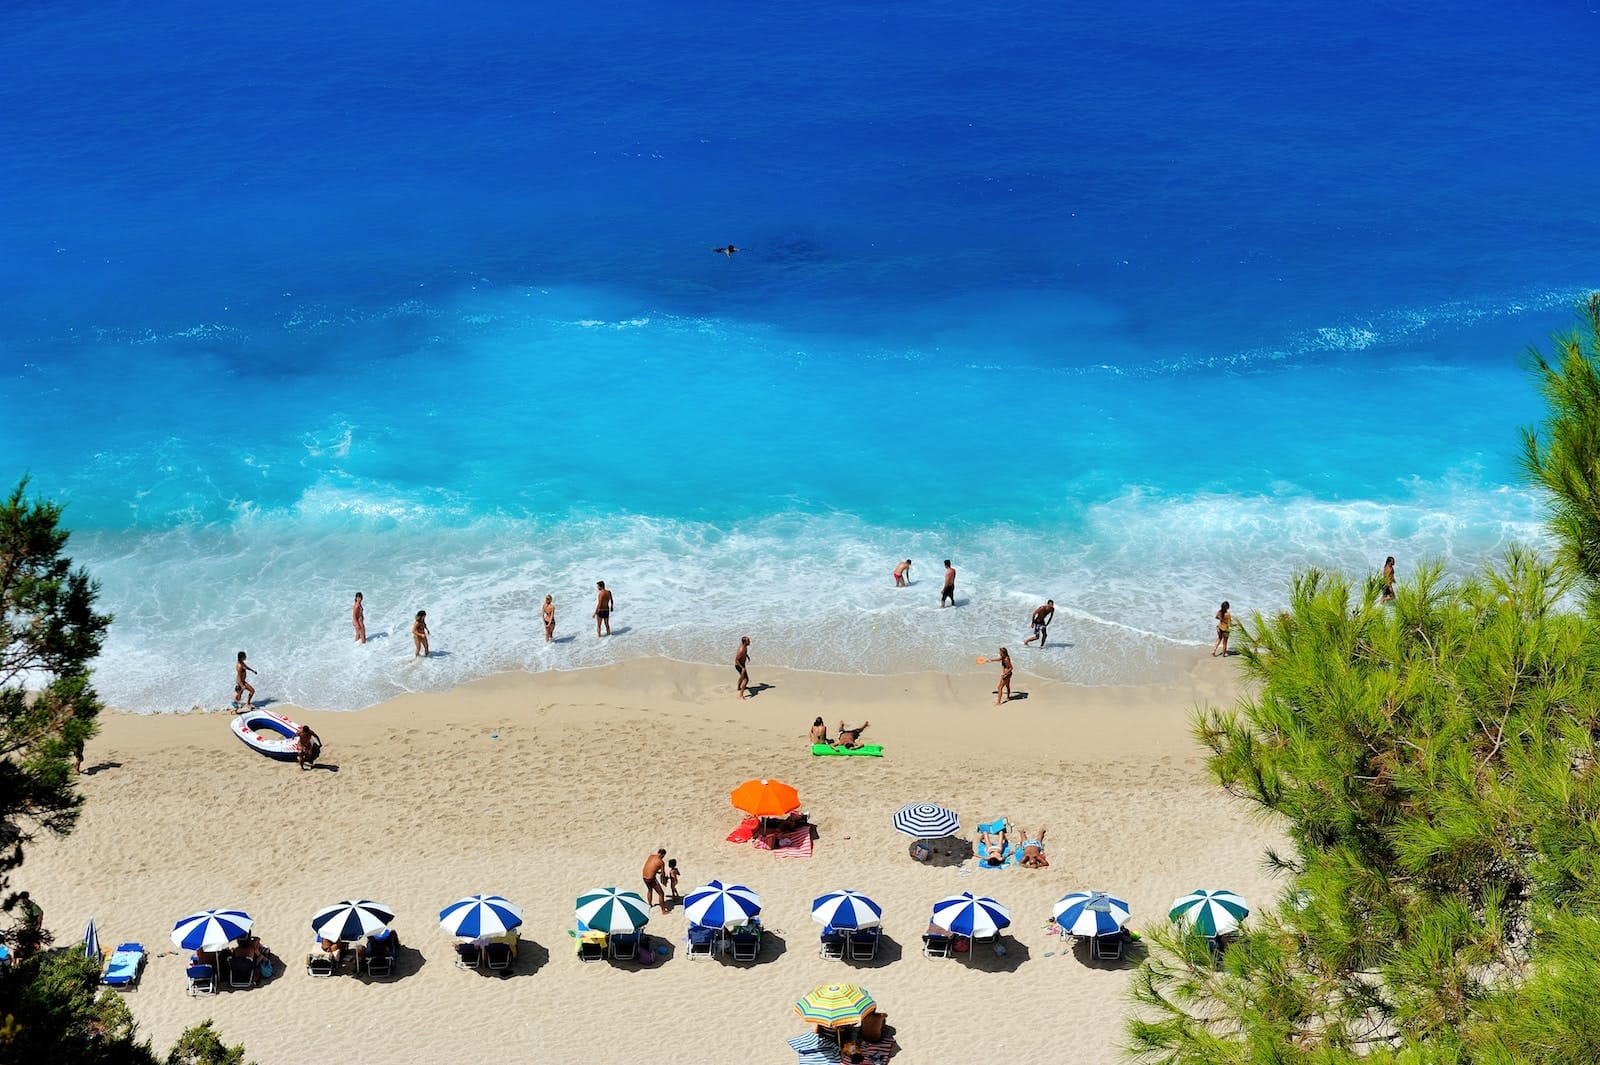 Luxury Family Vacation Lefkada Greece Golden Beach During Summertime